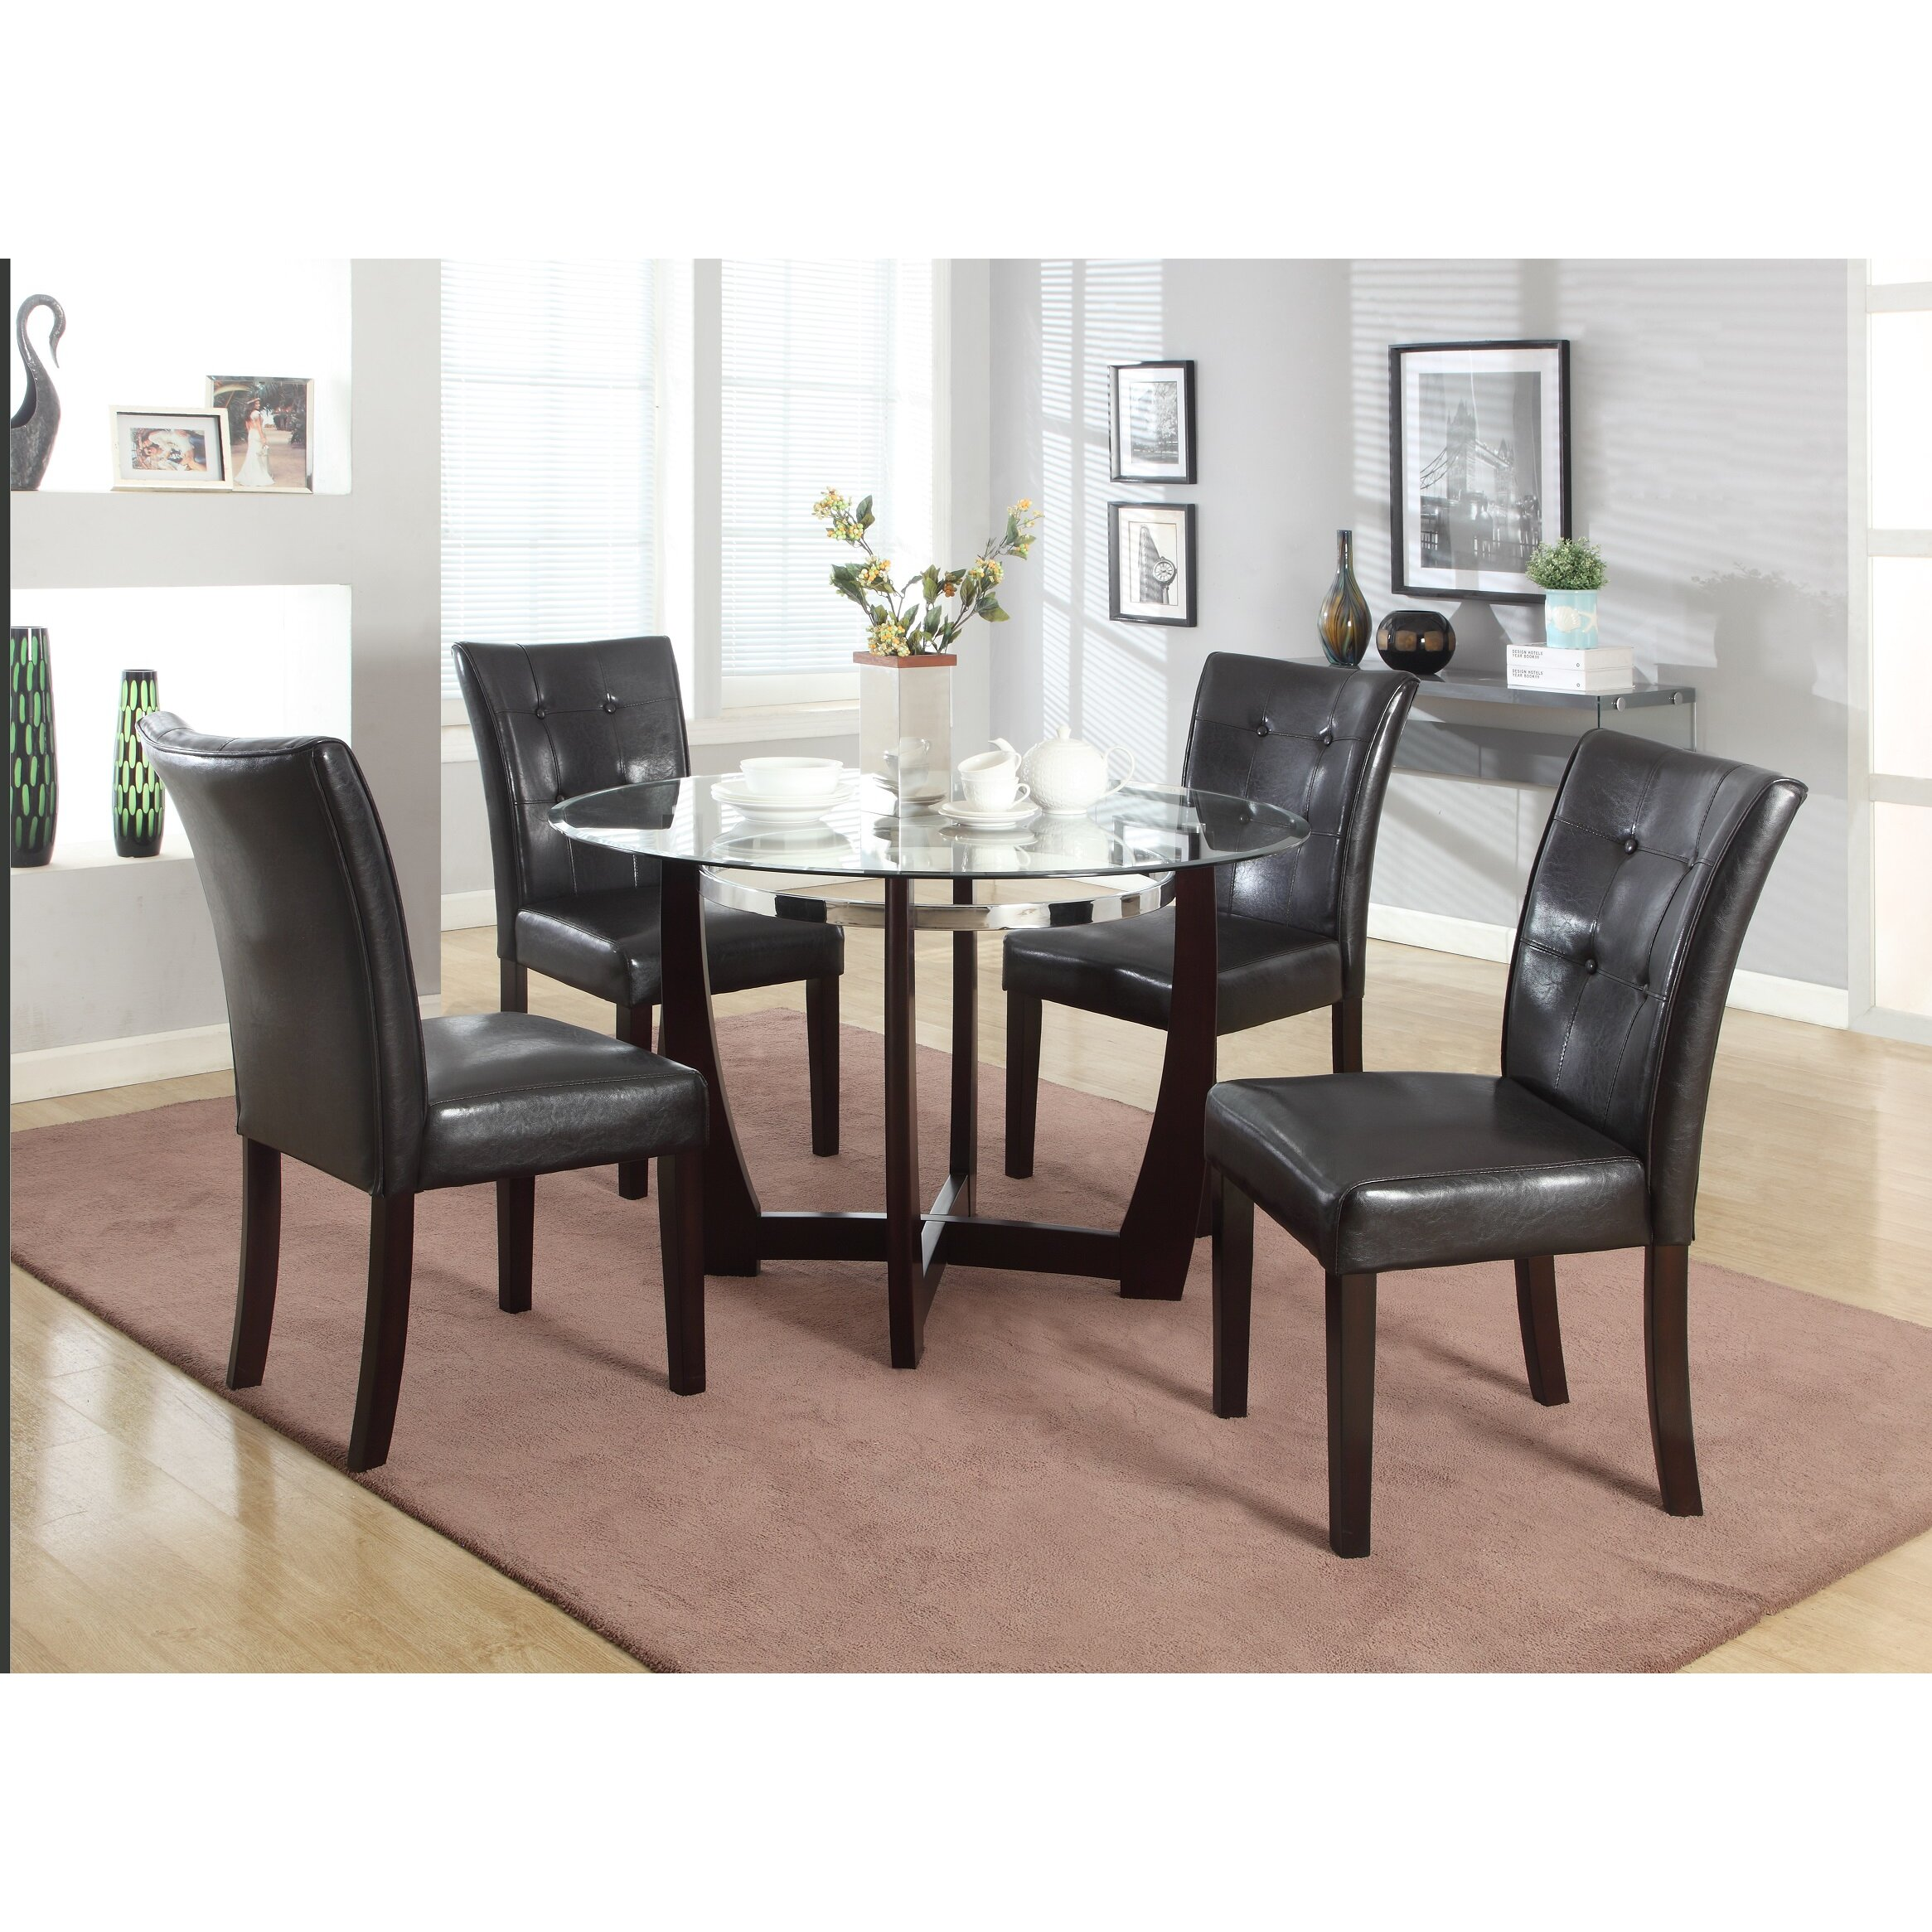 Roundhill Furniture Wesley 5 Piece Dining Set & Reviews